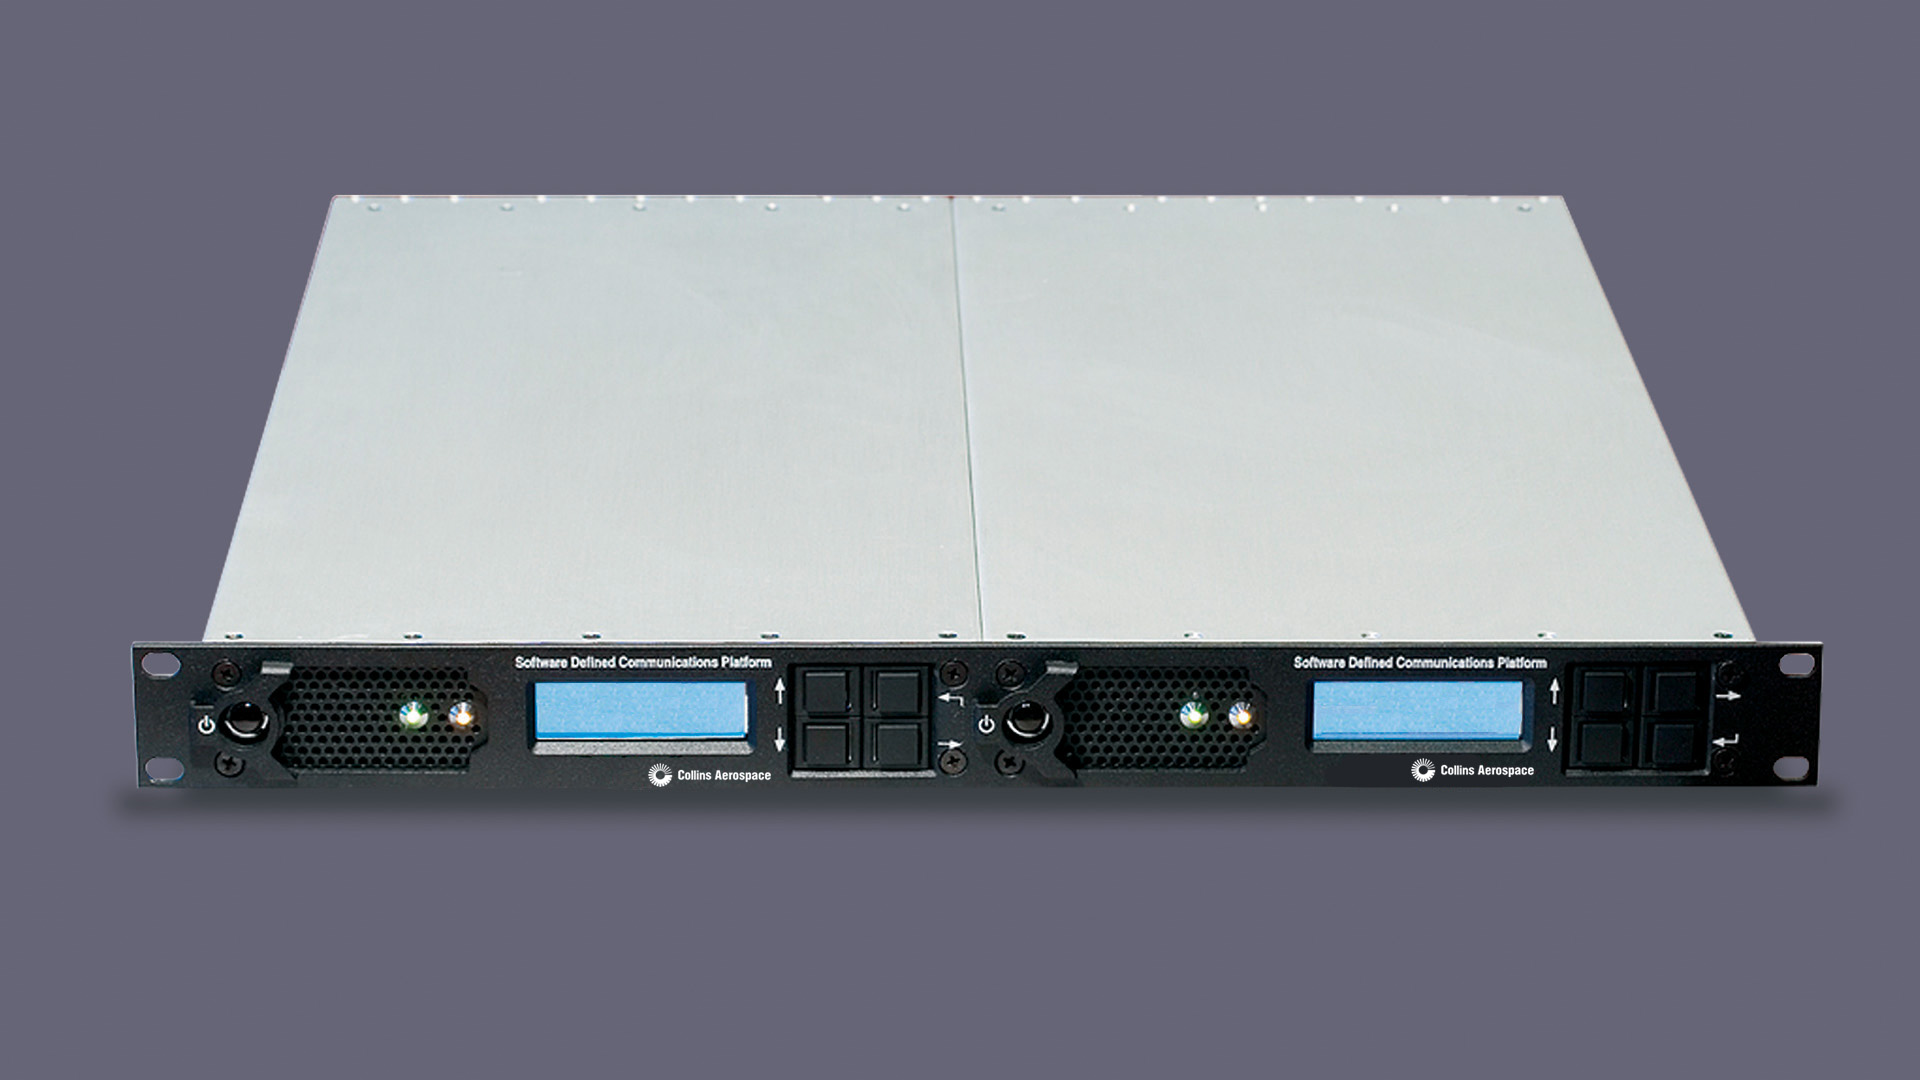 Image of a SNC-2050 SubNet Relay Controller box